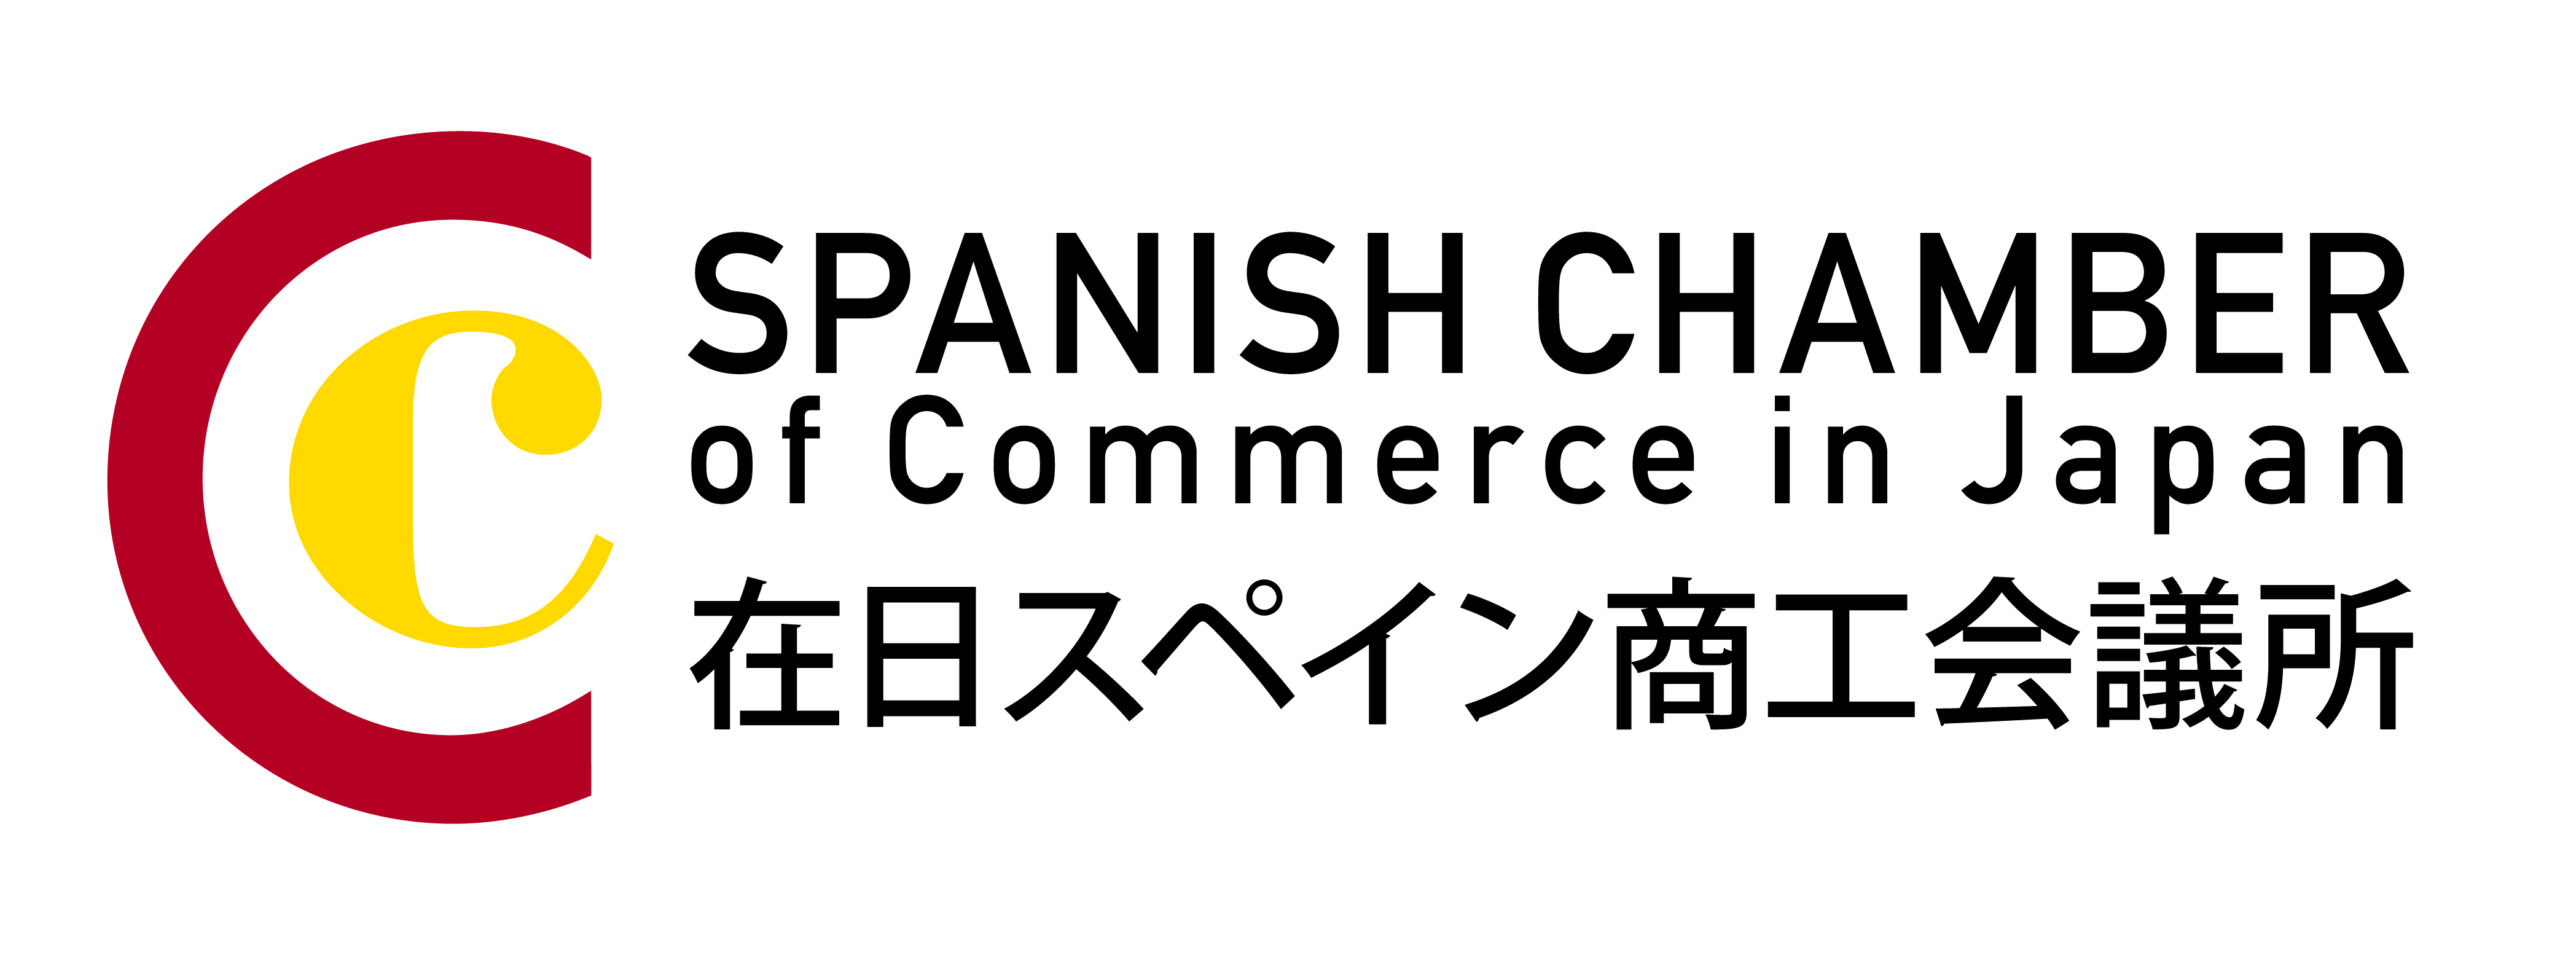 The Official Spanish Chamber of Commerce in Japan